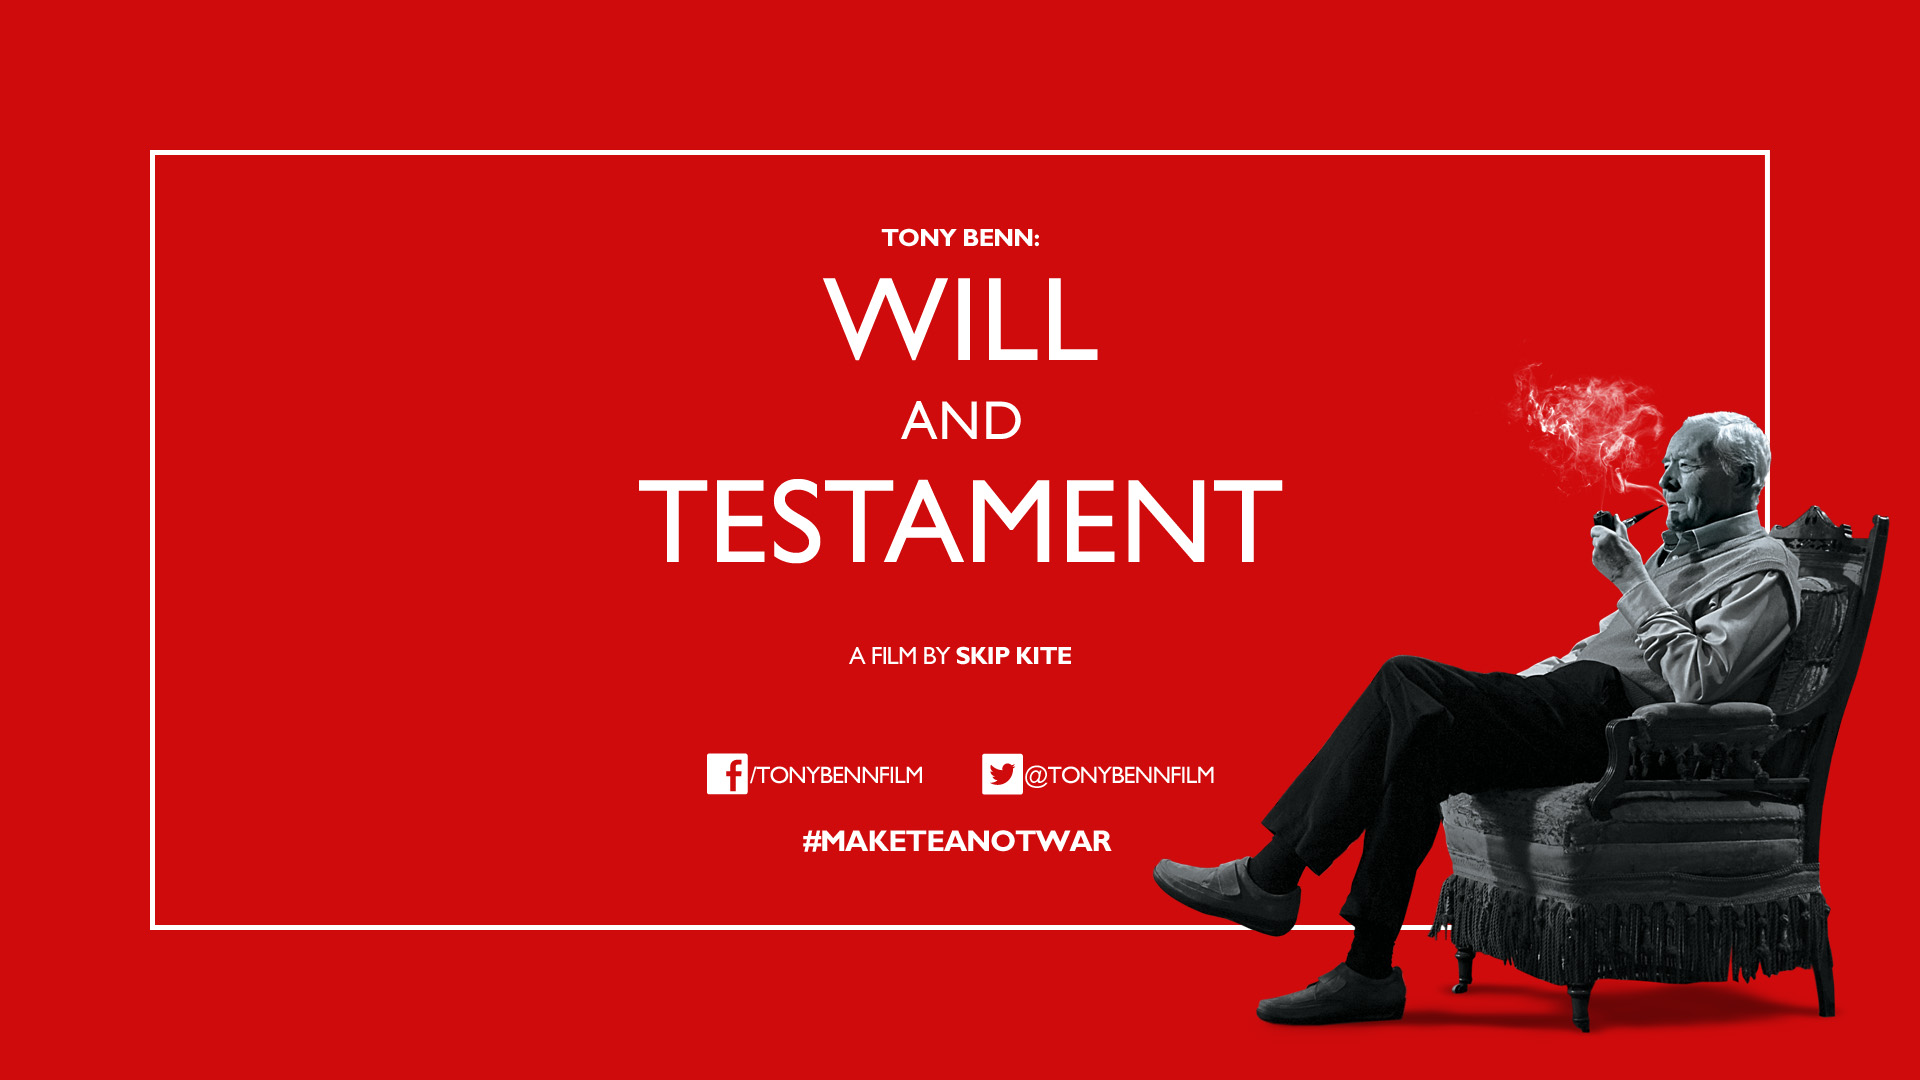 Tony Benn: Will & Testament